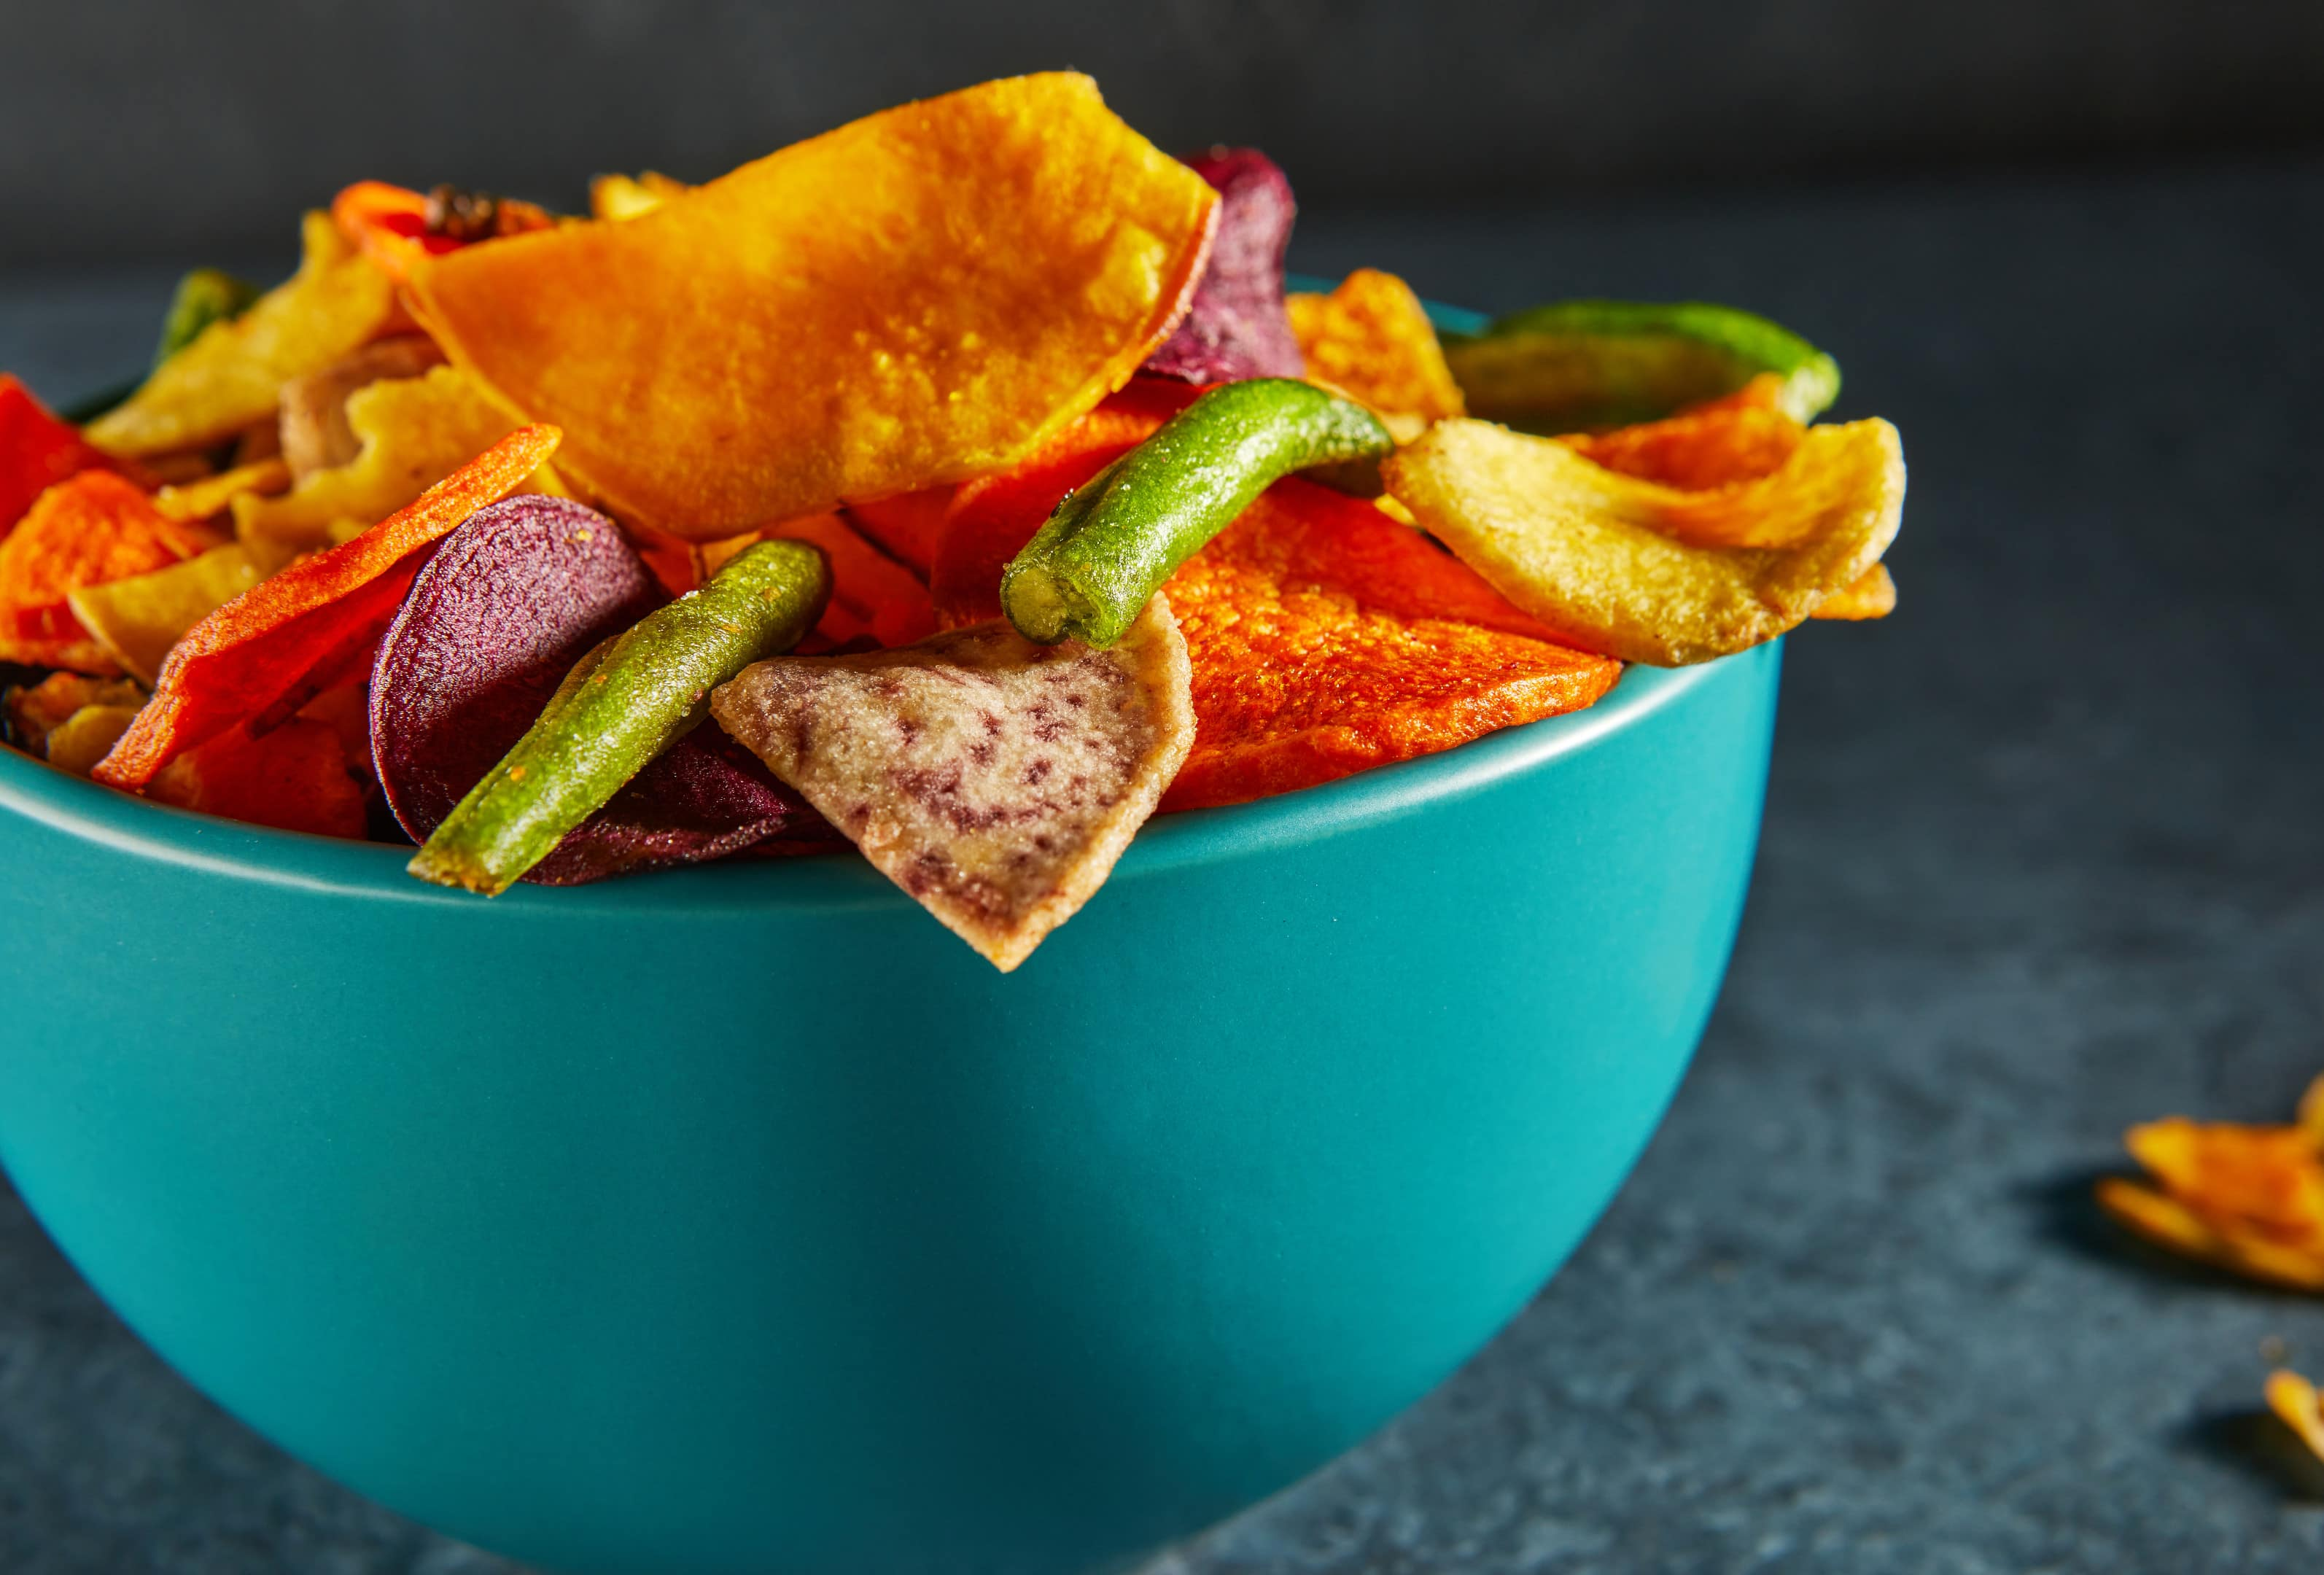 Dehydrated vegetable chips in blue bowl